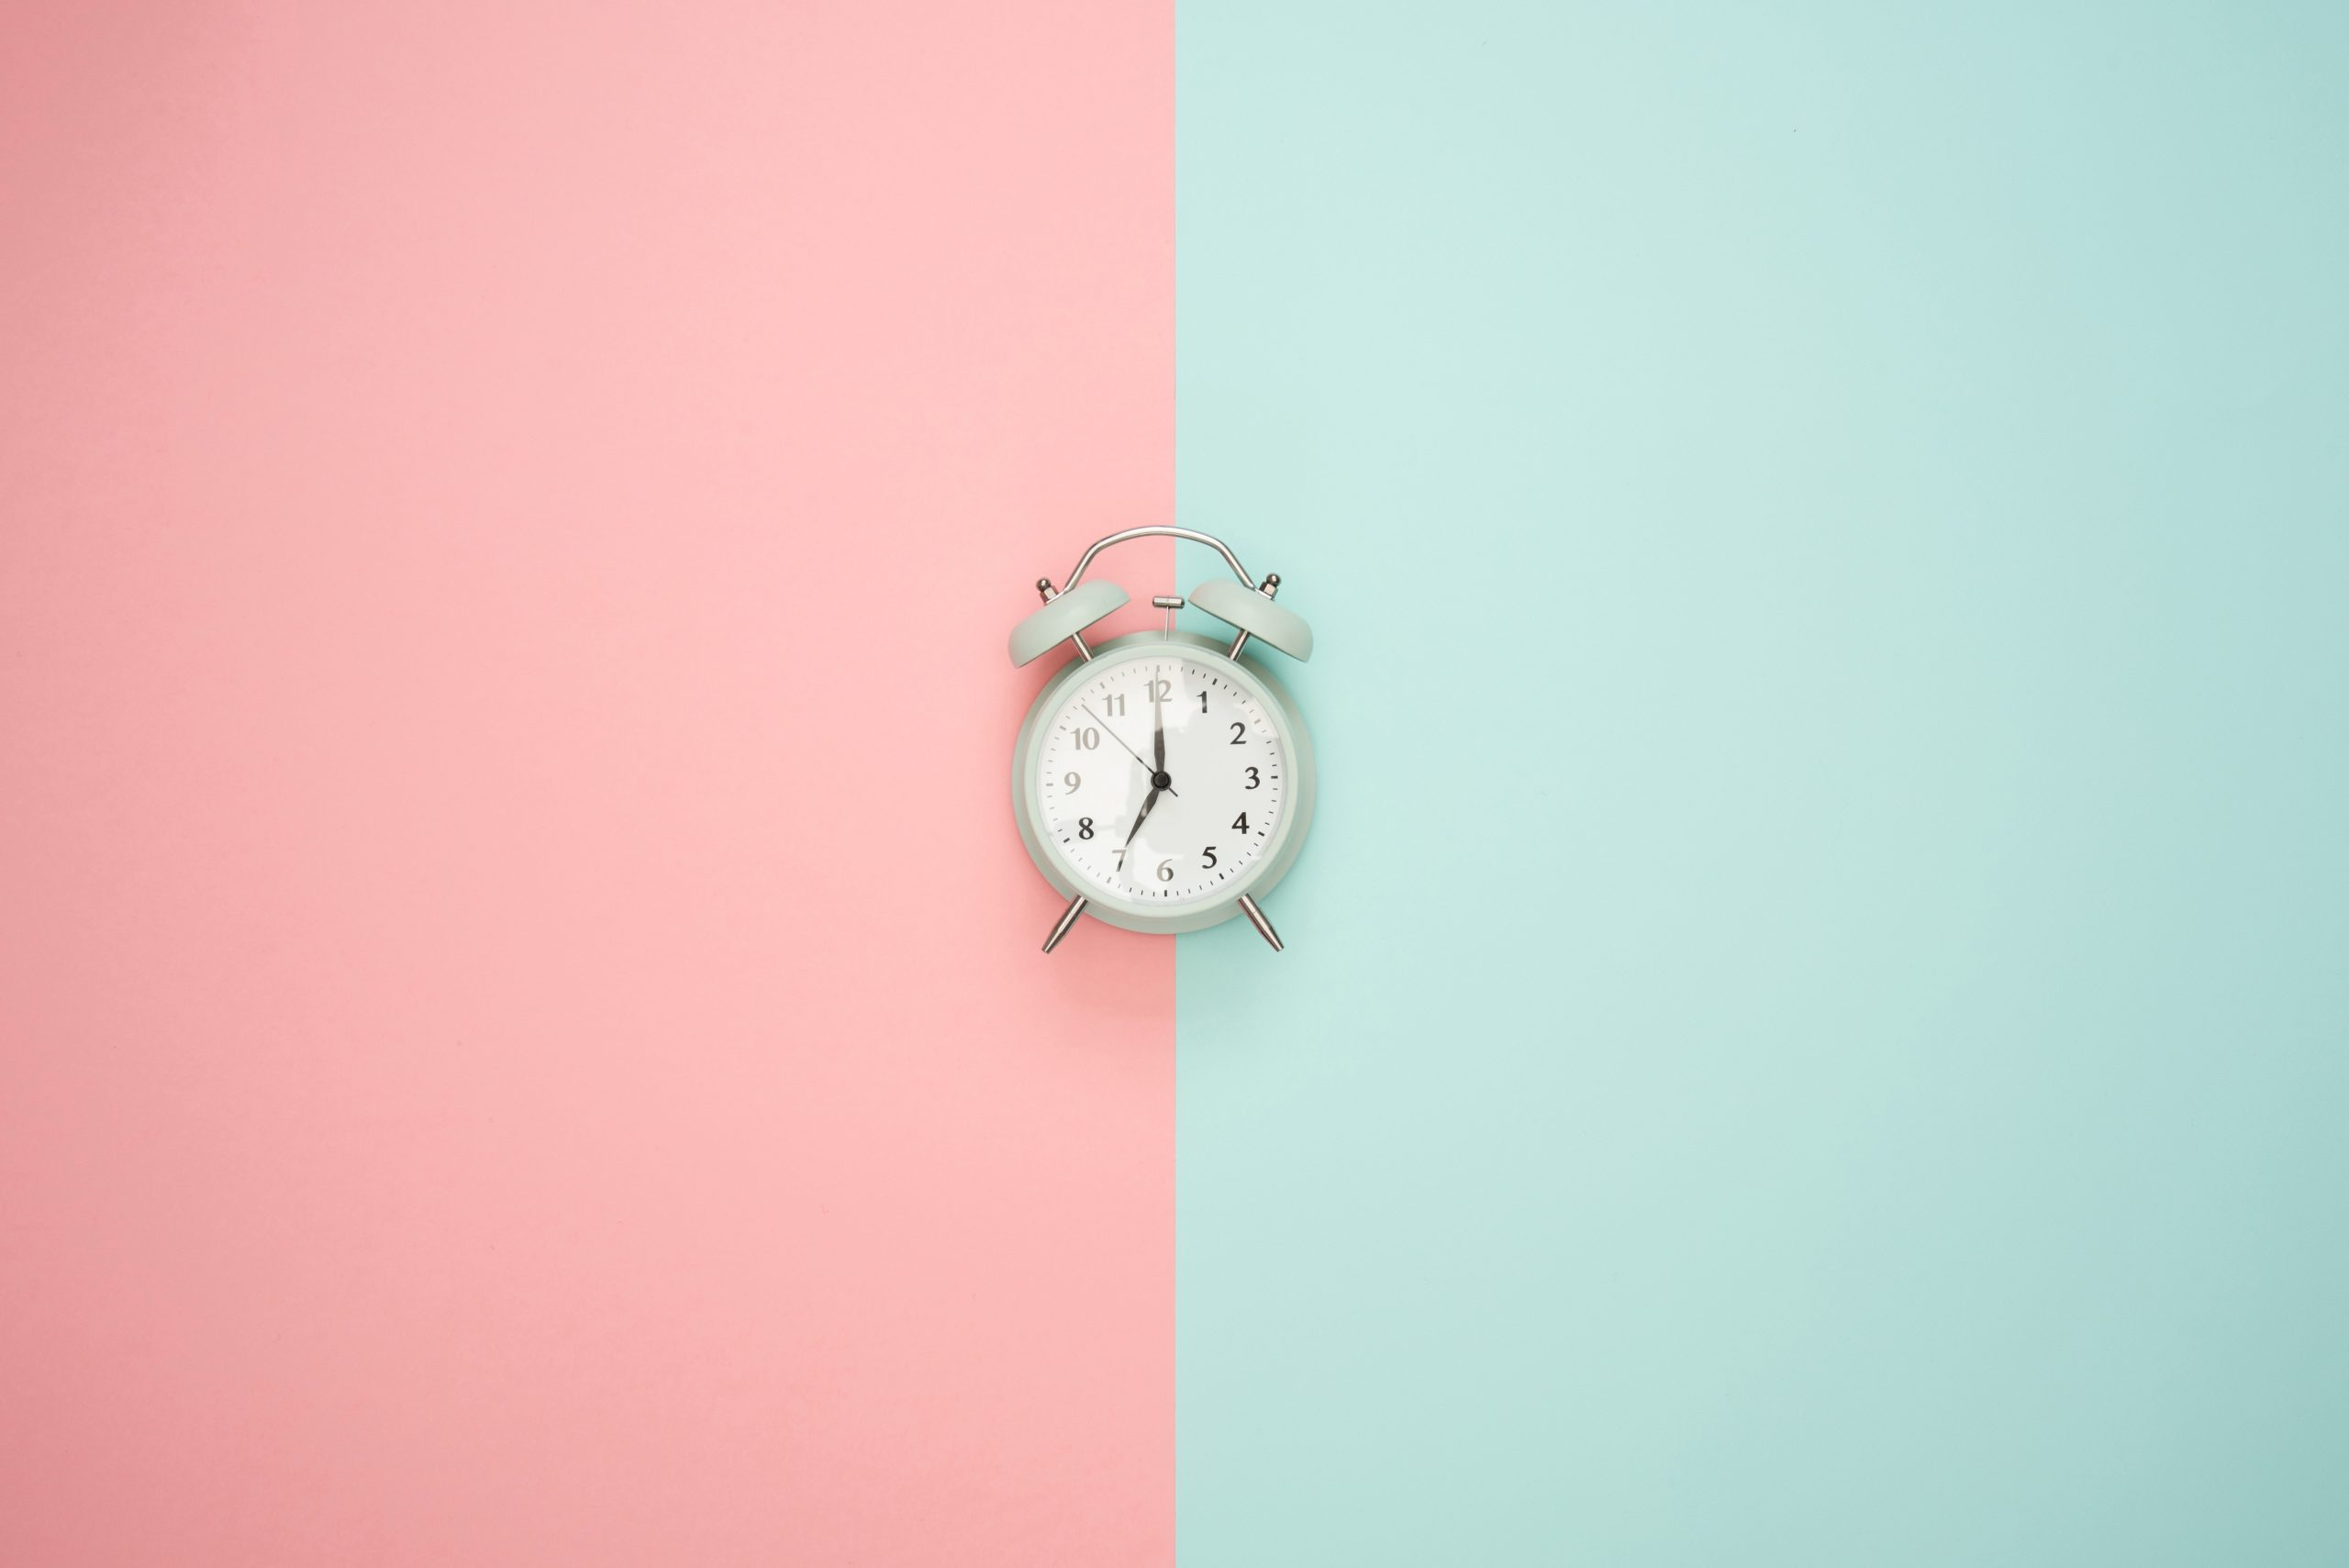 A blue alarm clock on a pink and blue background.